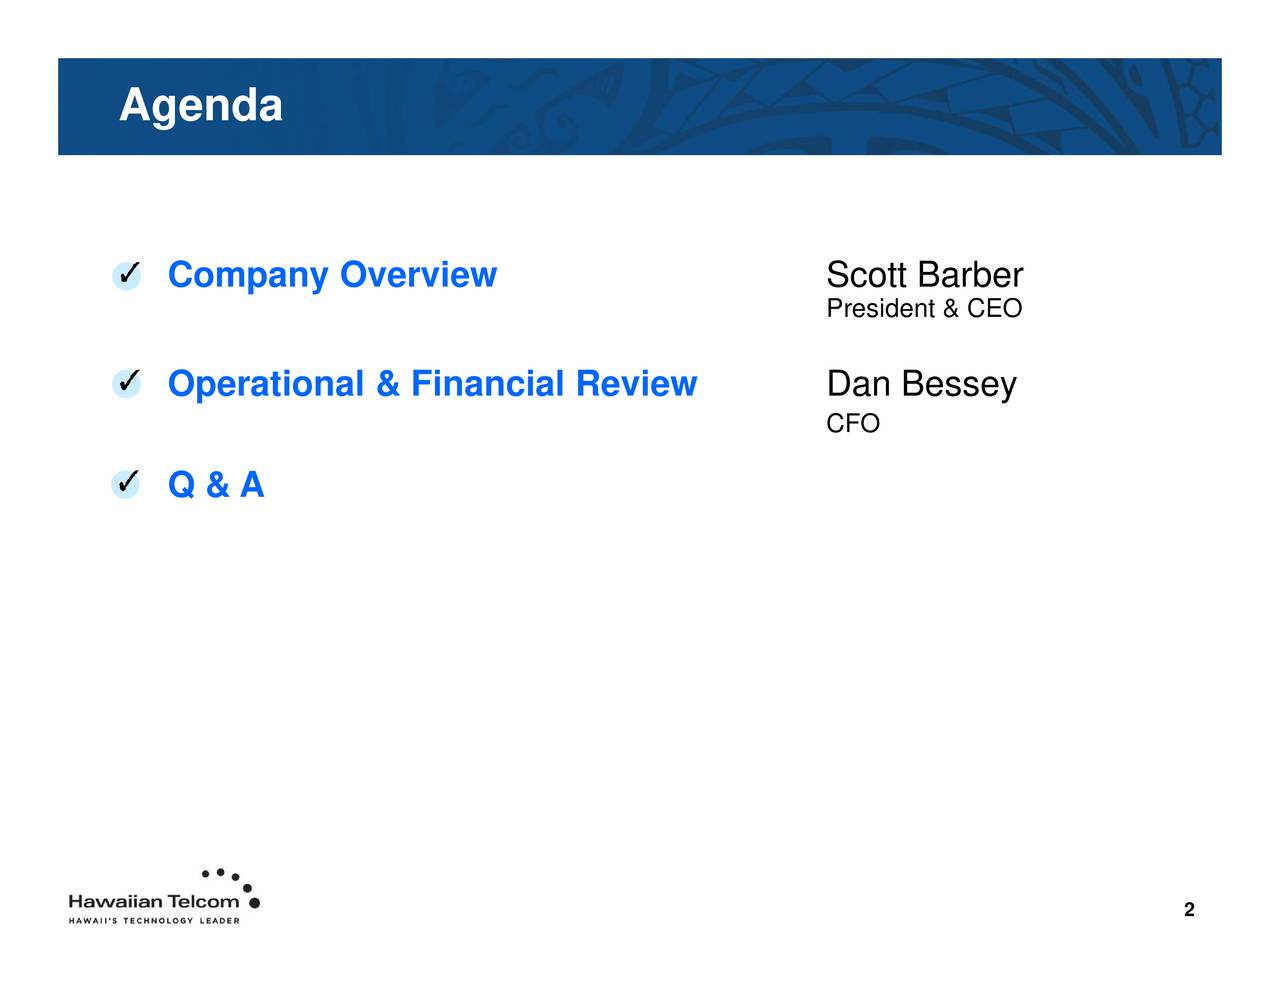 ScPrtienanCEessey Compa nyeOrti&nel& Financial Review Agenda